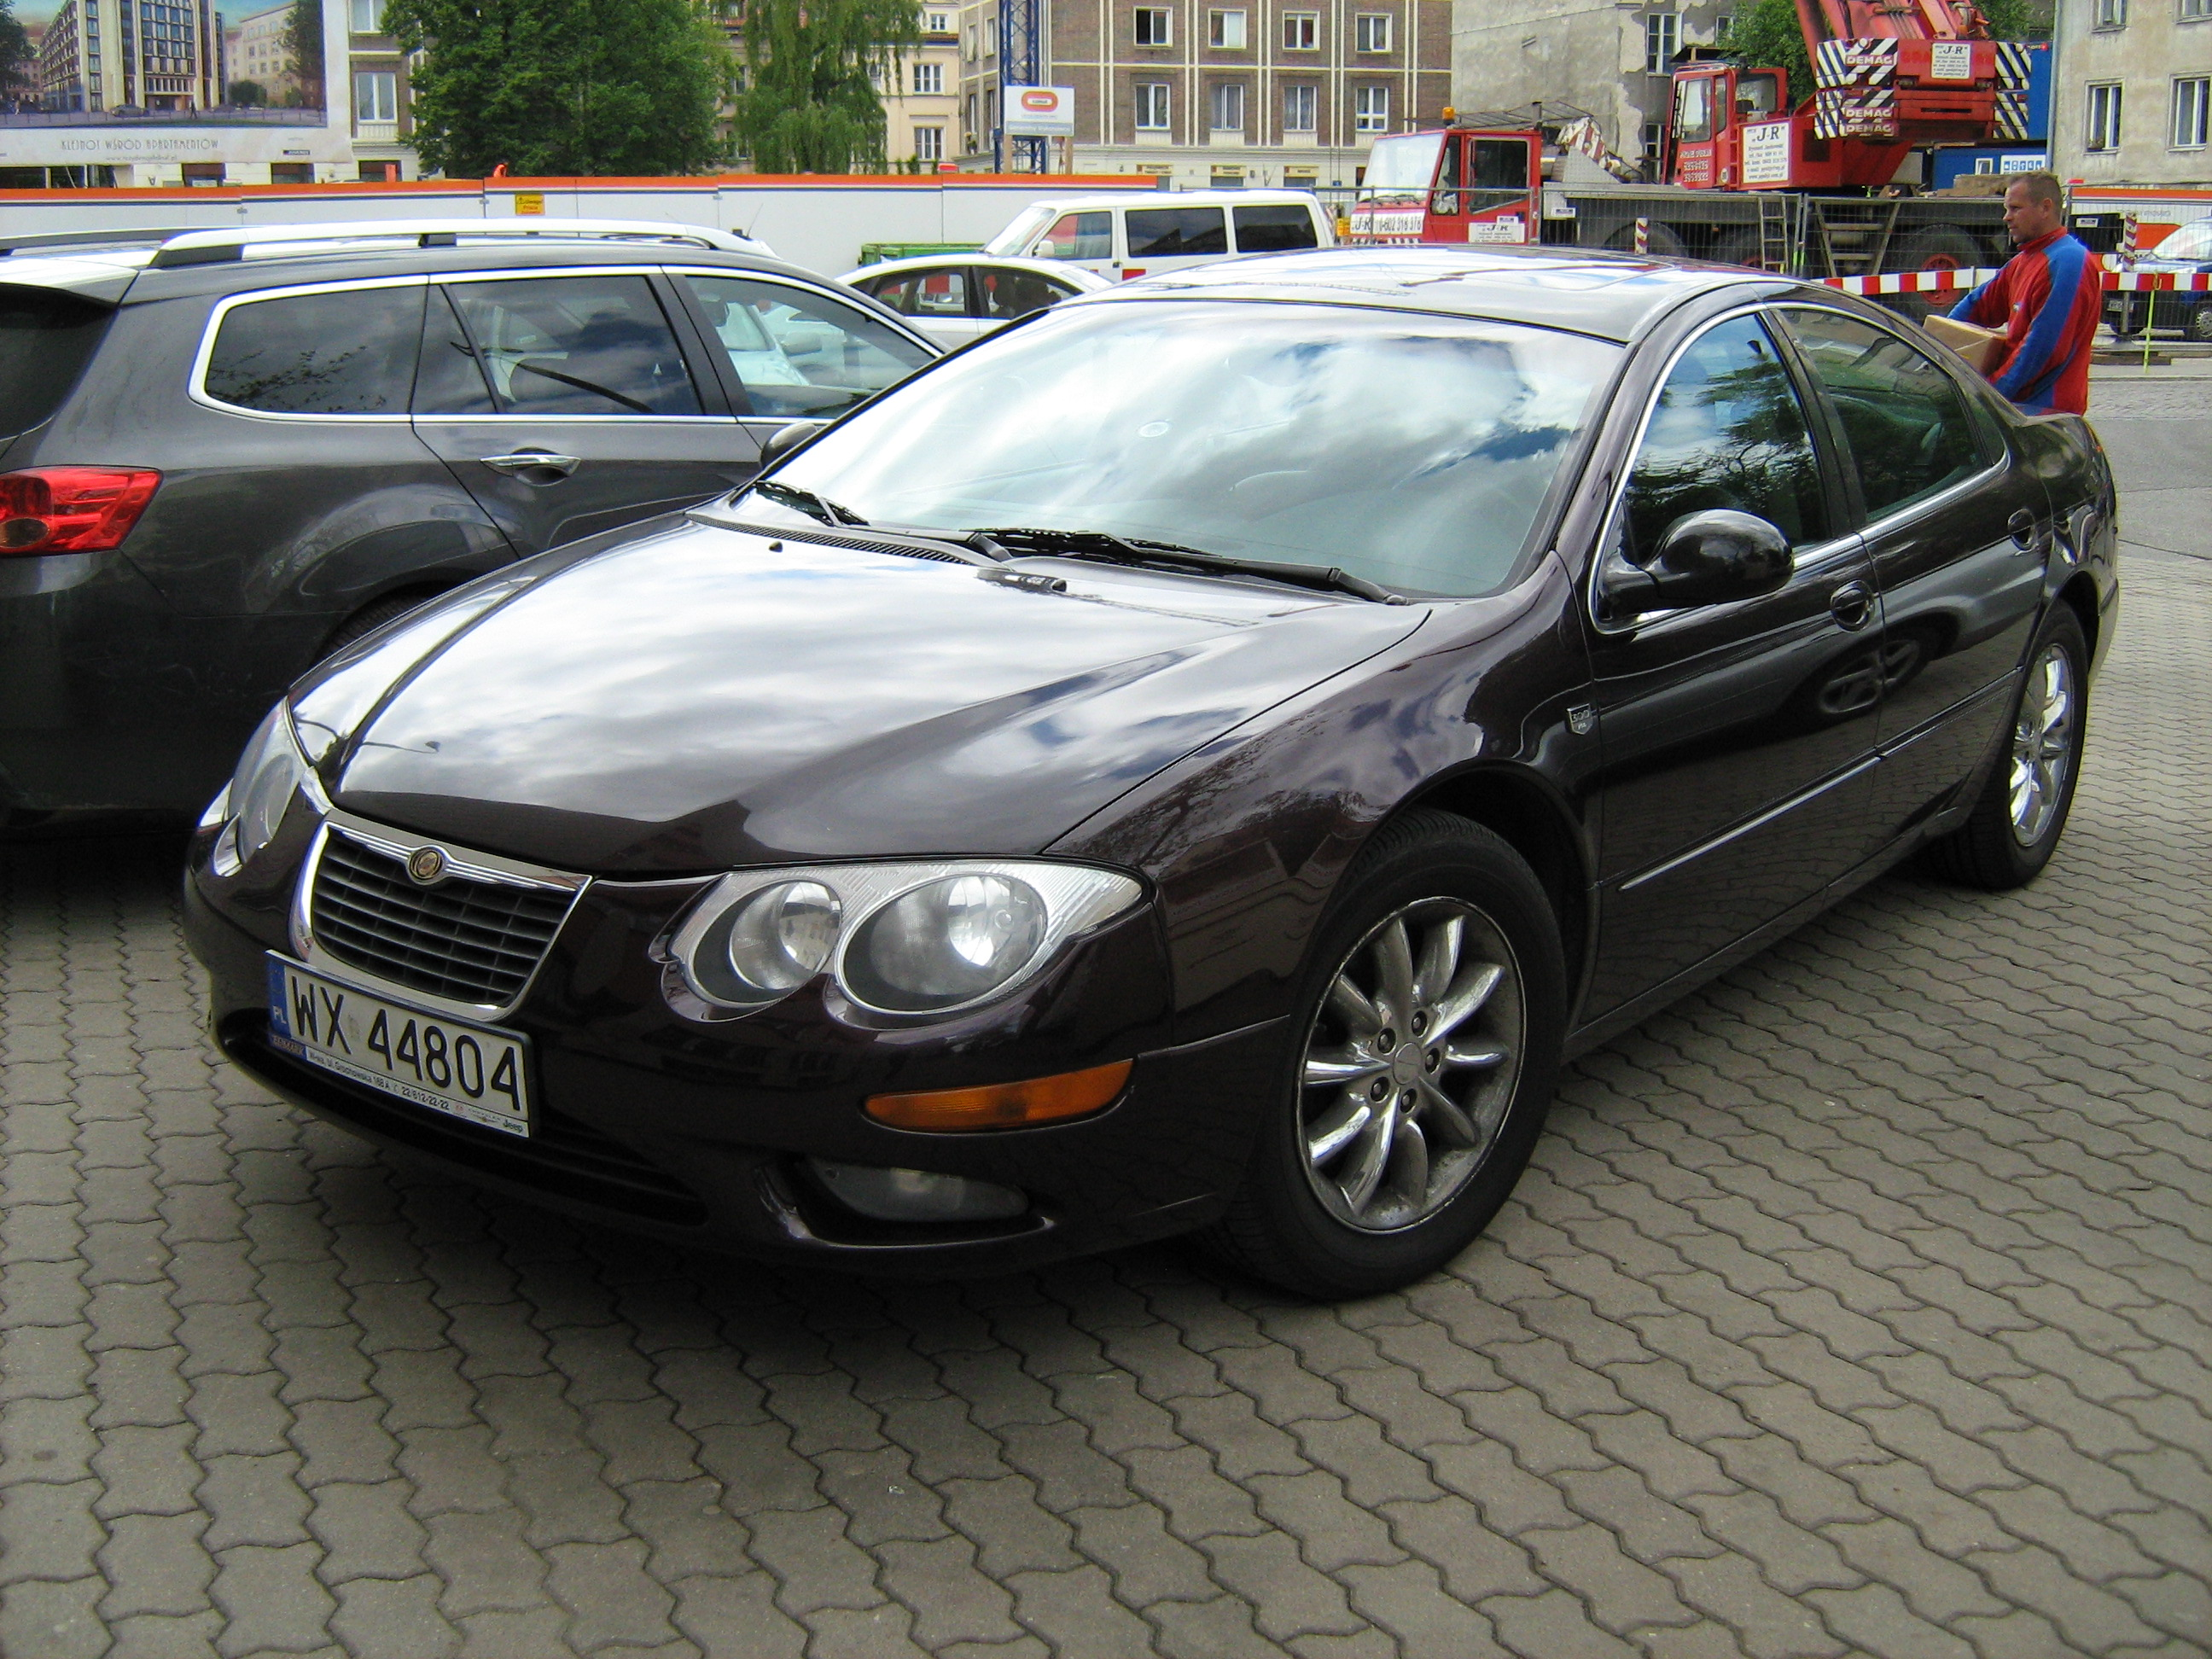 2000 Chrysler 300 Filechrysler 300 M Black In Warsaw Fjpg Wikimedia Commons